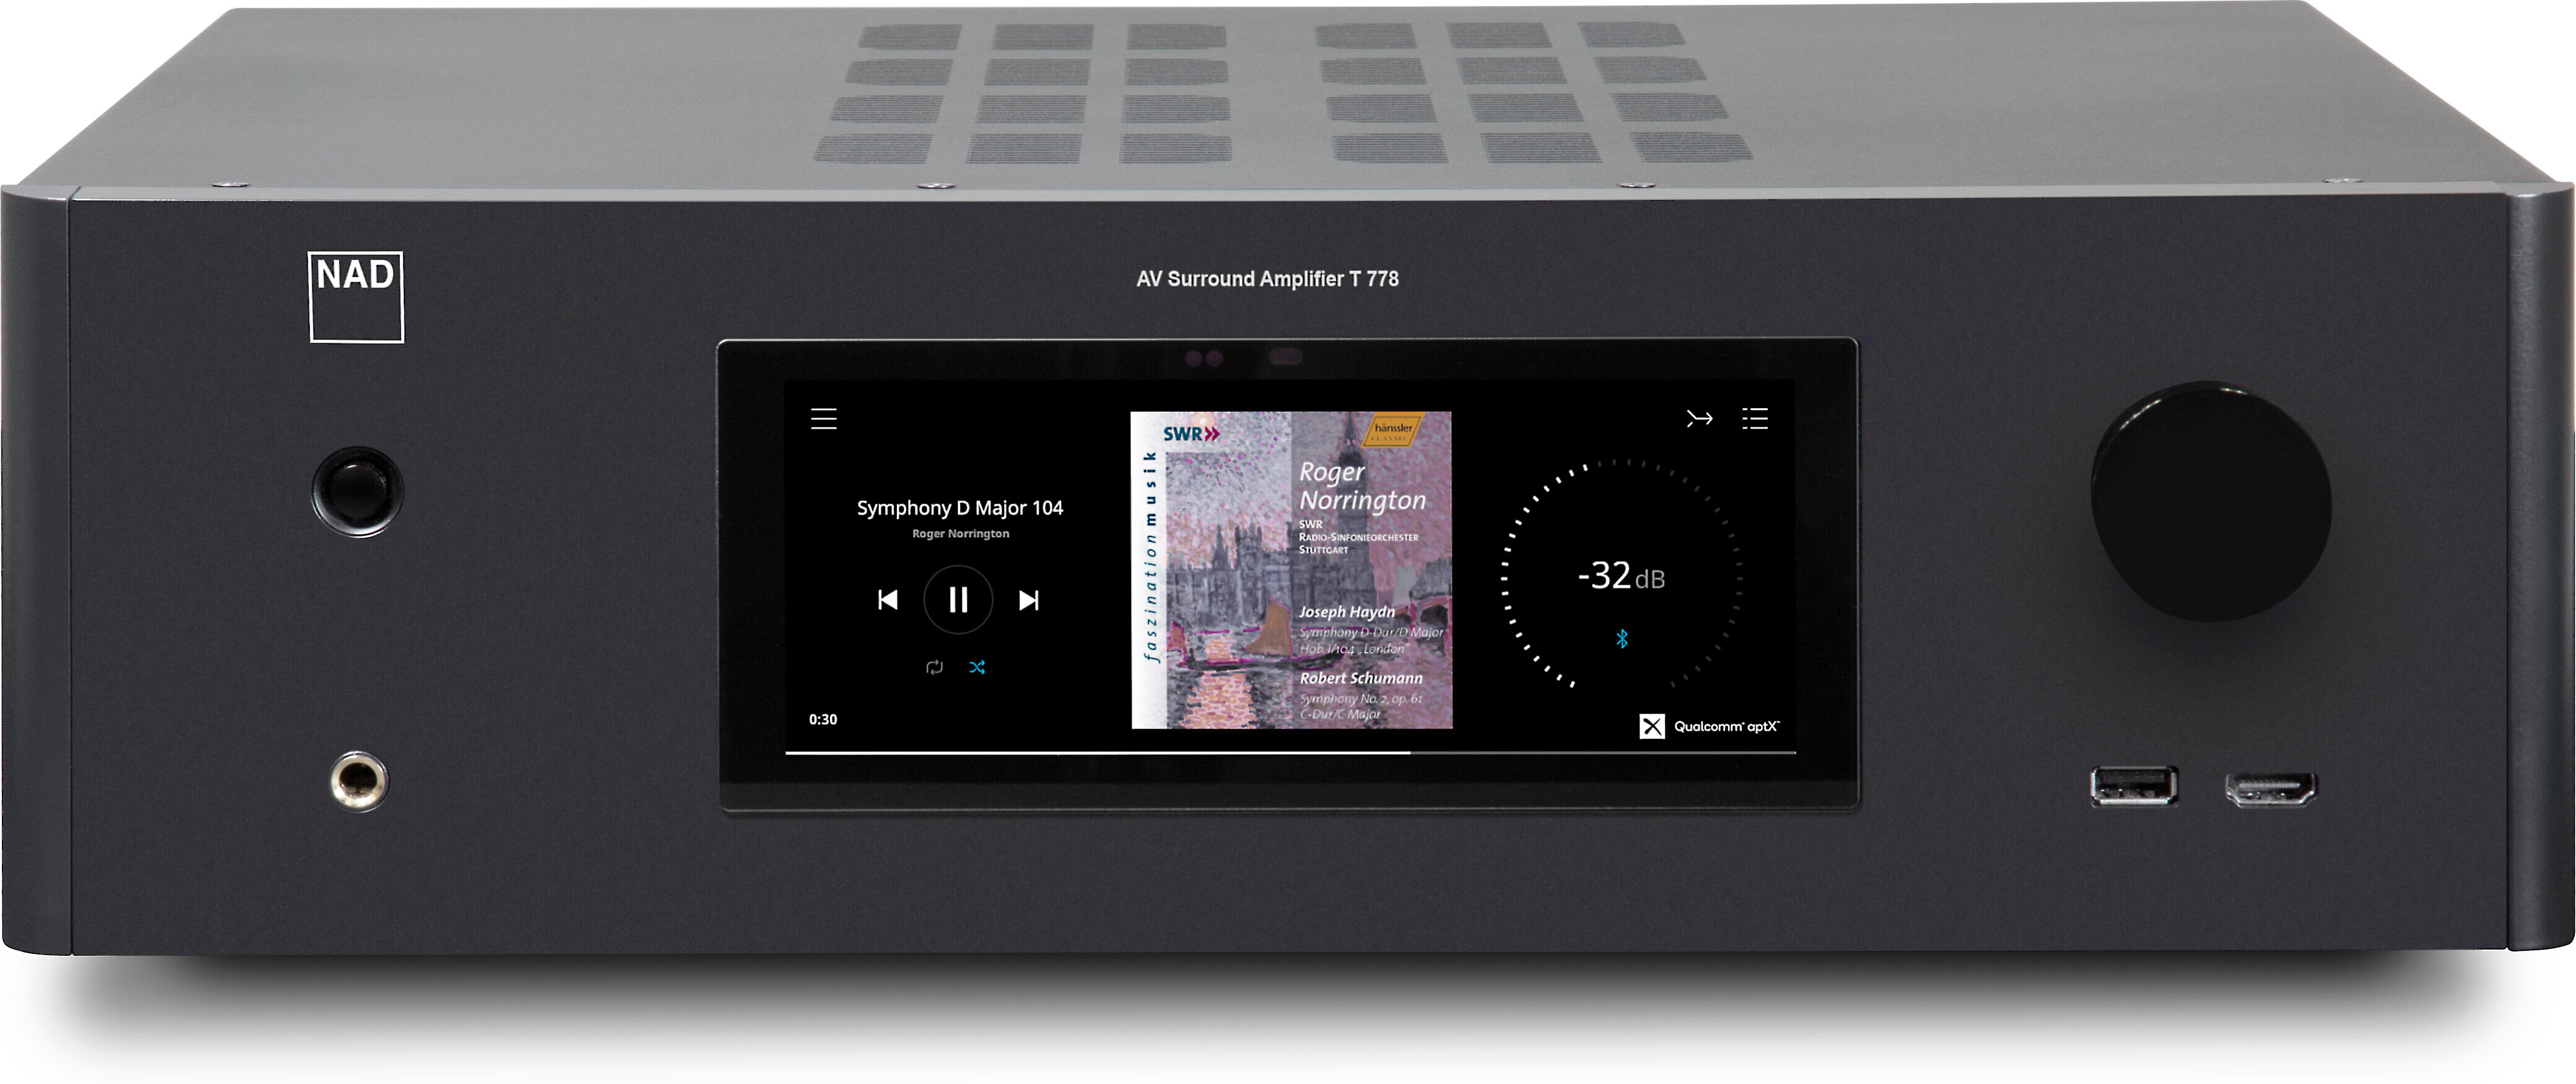 NAD T 778 9.2 channel home theater receiver with Wi Fi®, BluOS™, Bluetooth®, Apple AirPlay® 2, and Dolby Atmos® at Crutchfield